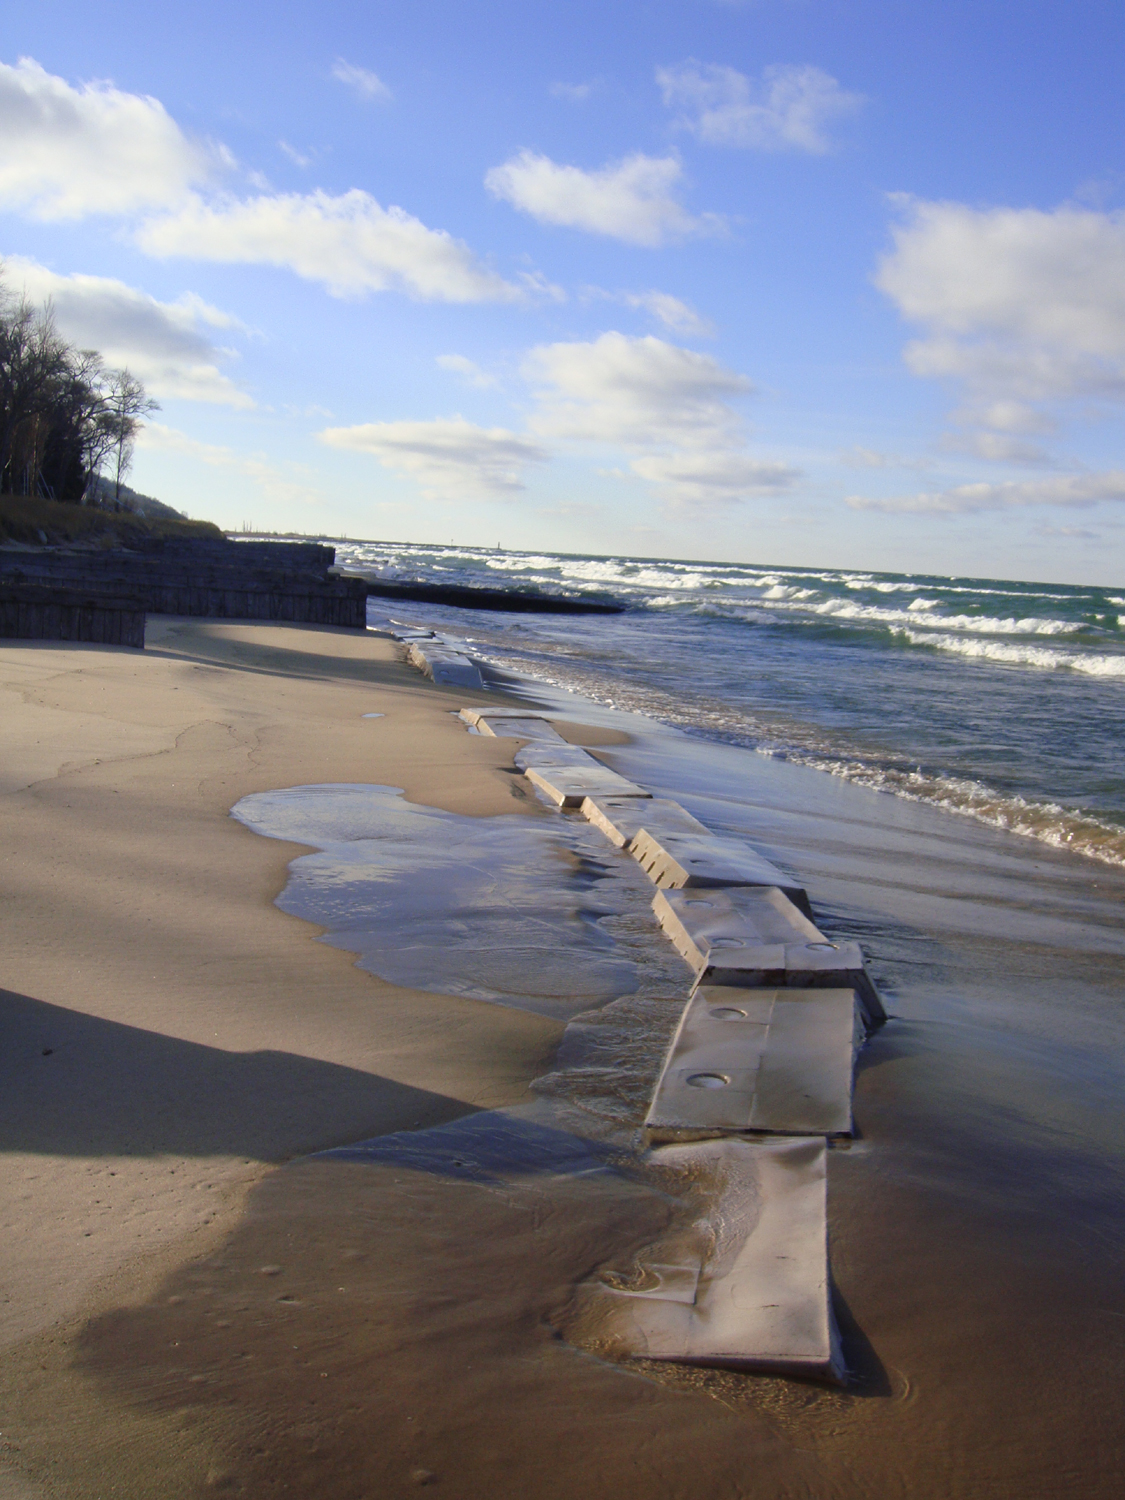 Sandsaver Dec 26 2011 Lake Michigan